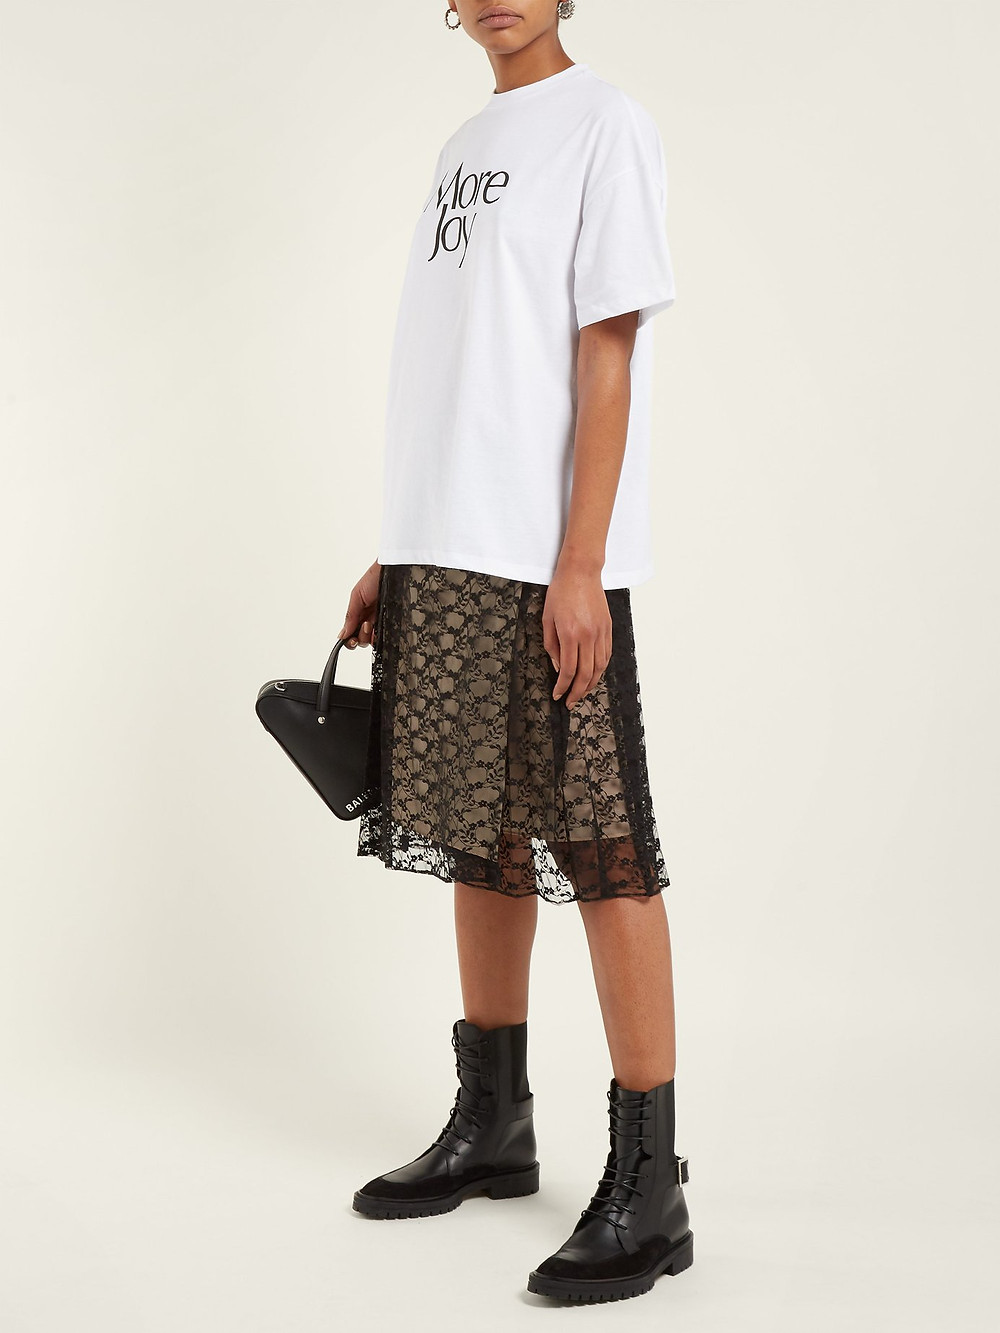 CHRISTOPHER KANE  More Joy printed cotton T-shirt